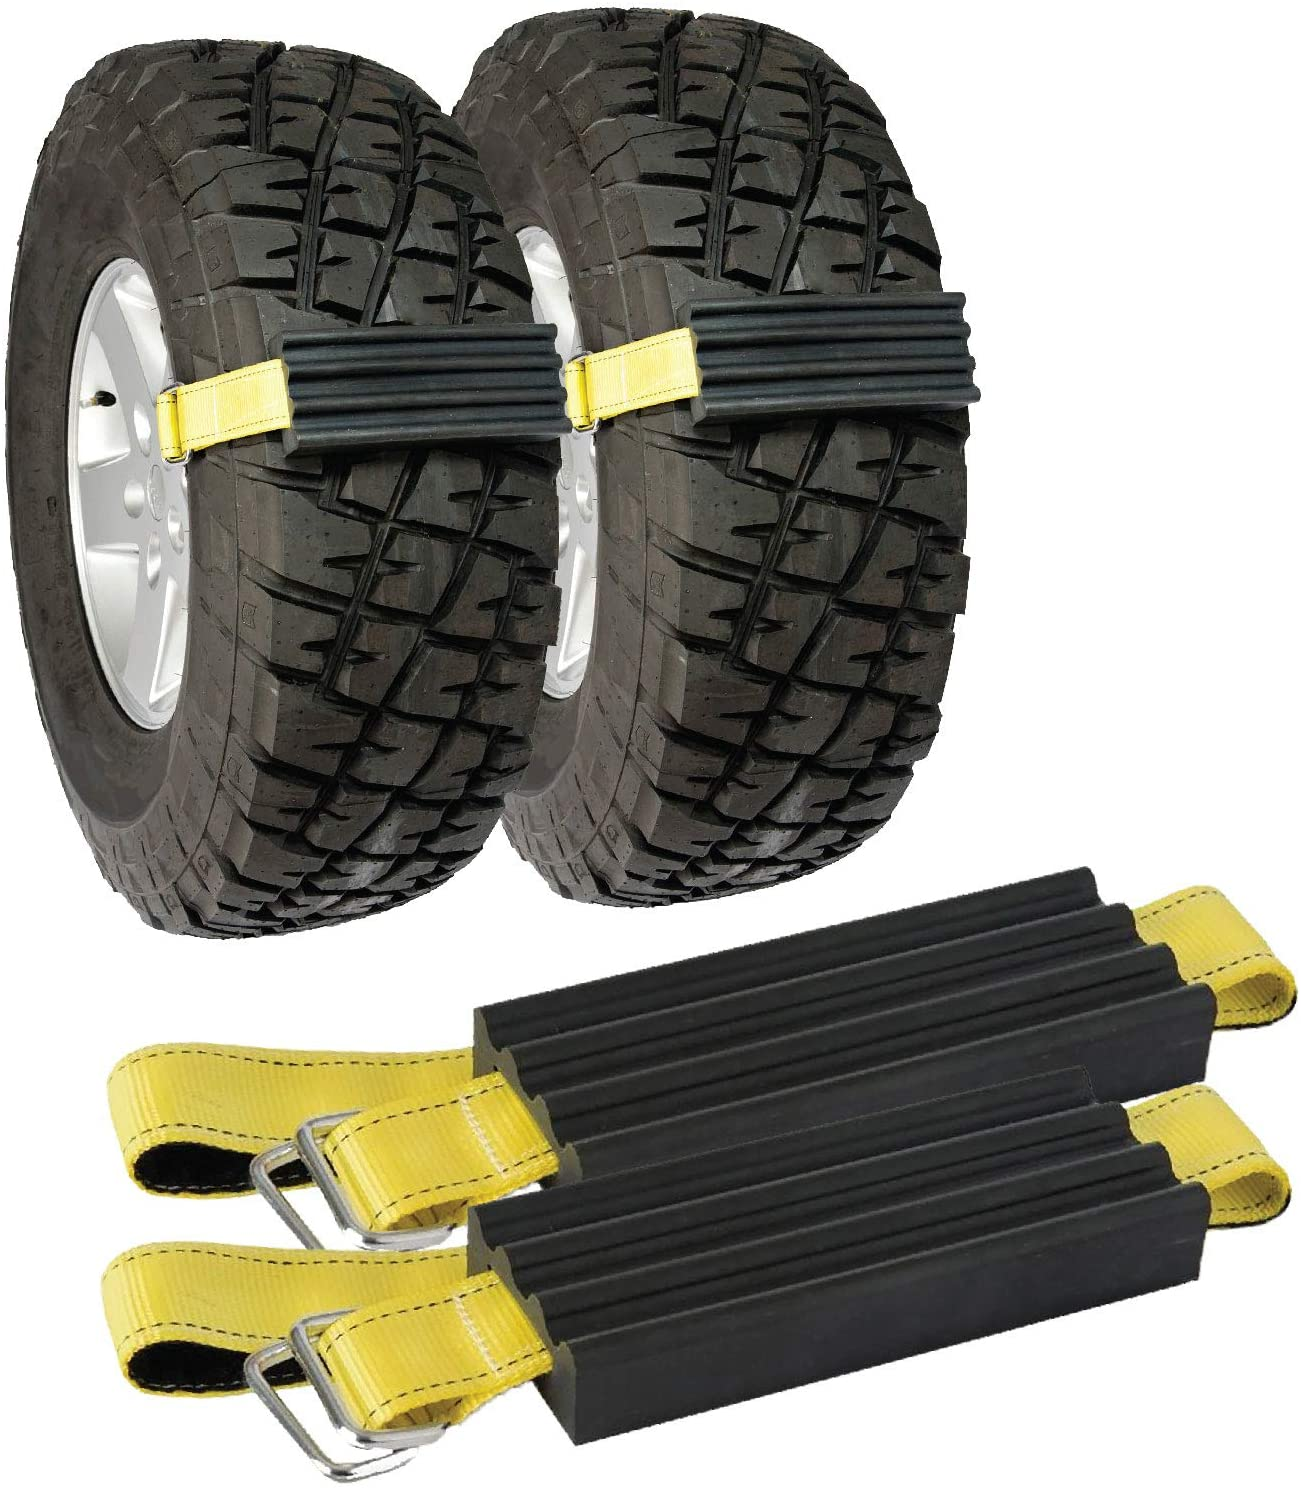 TracGrabber traction device